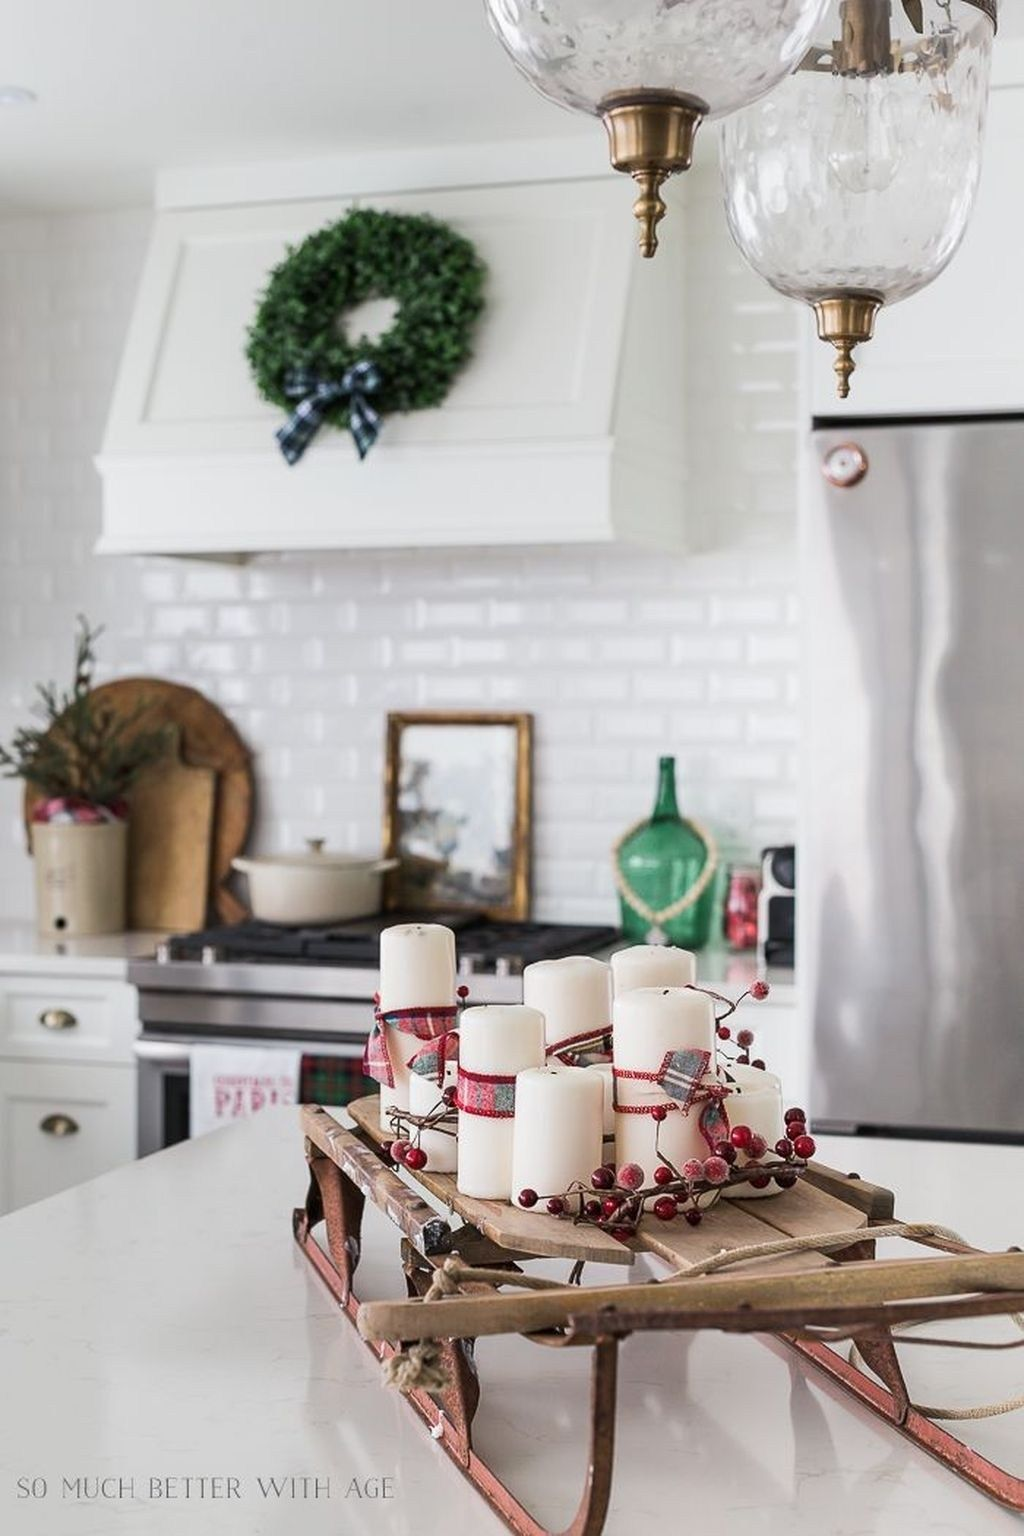 Comfy Rustic Winter Kitchen Ideas After Christmas30 Decor Plaid Christmas Decor Kitchen Decor